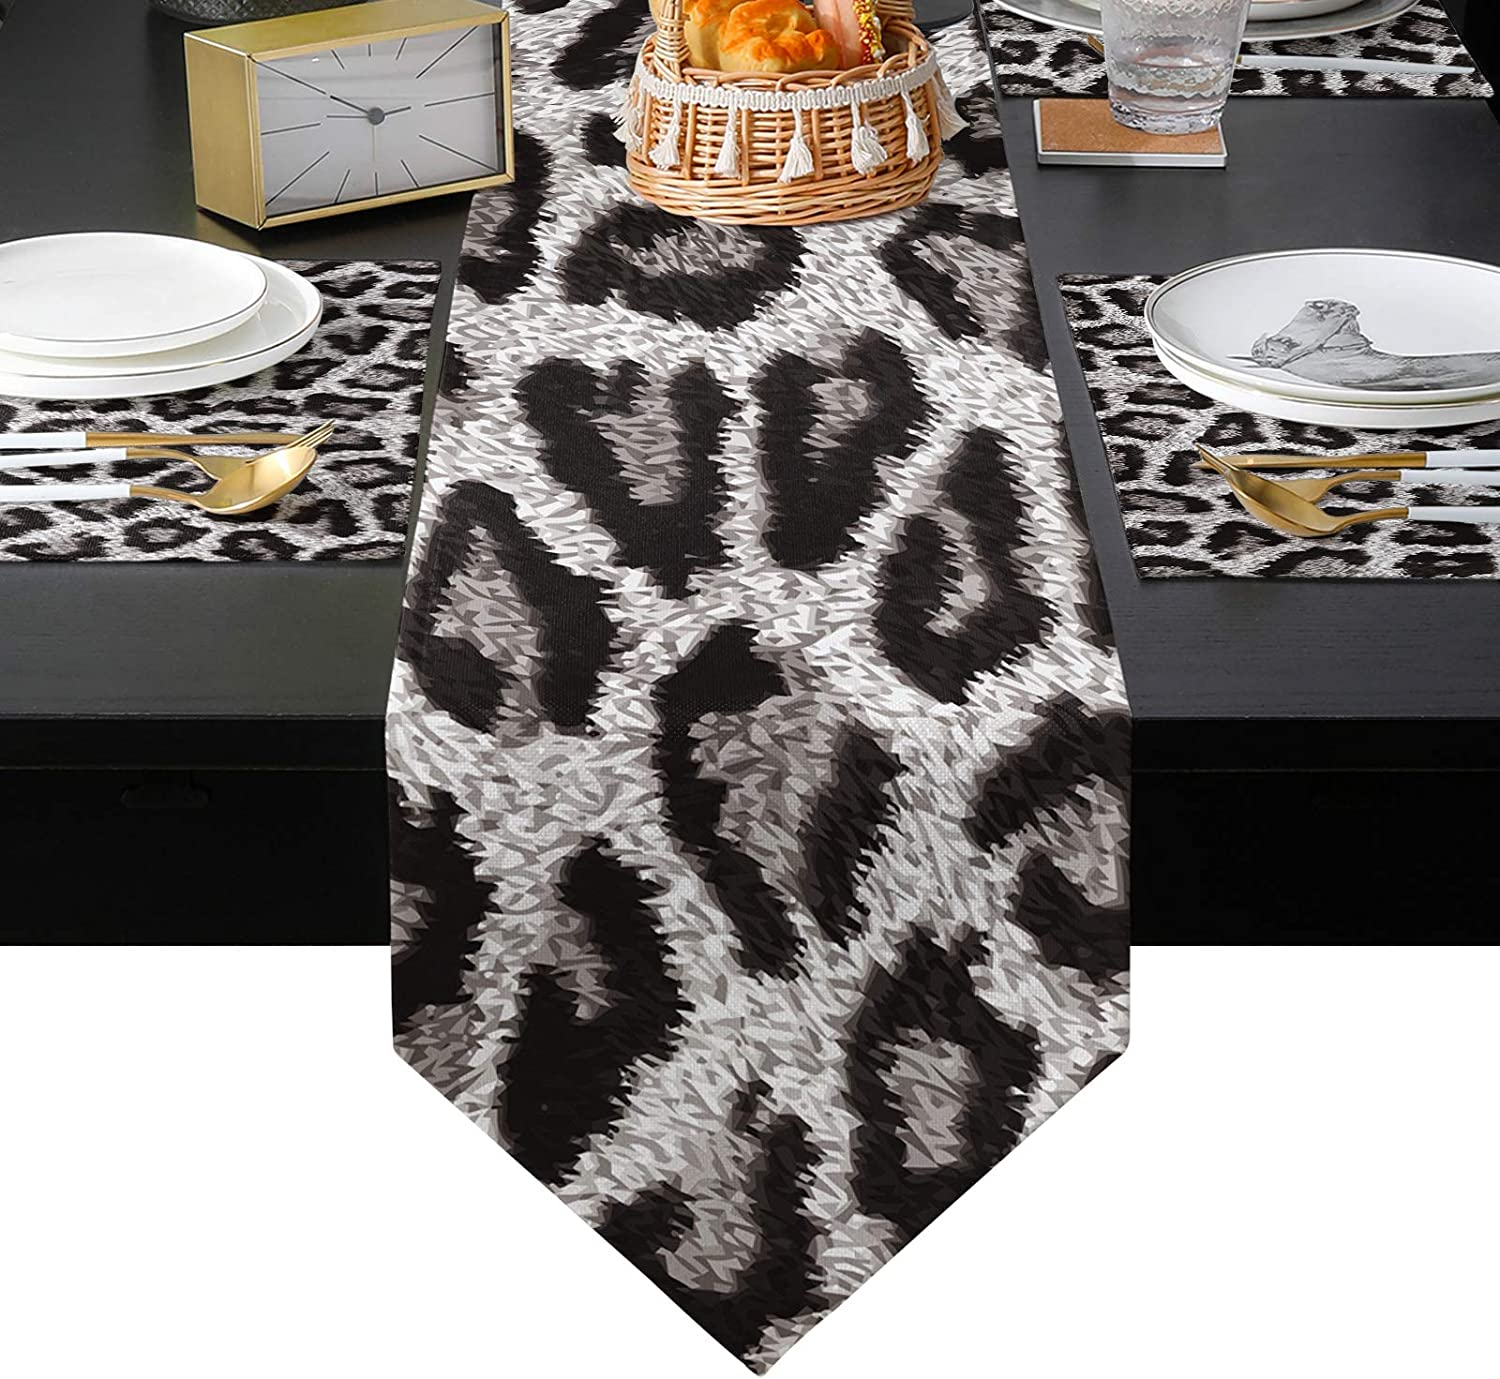 BABE MAPS Brand Cheap Sale Venue Leopard Print Table Runner Placemats Popular popular 6 of Cot Set and